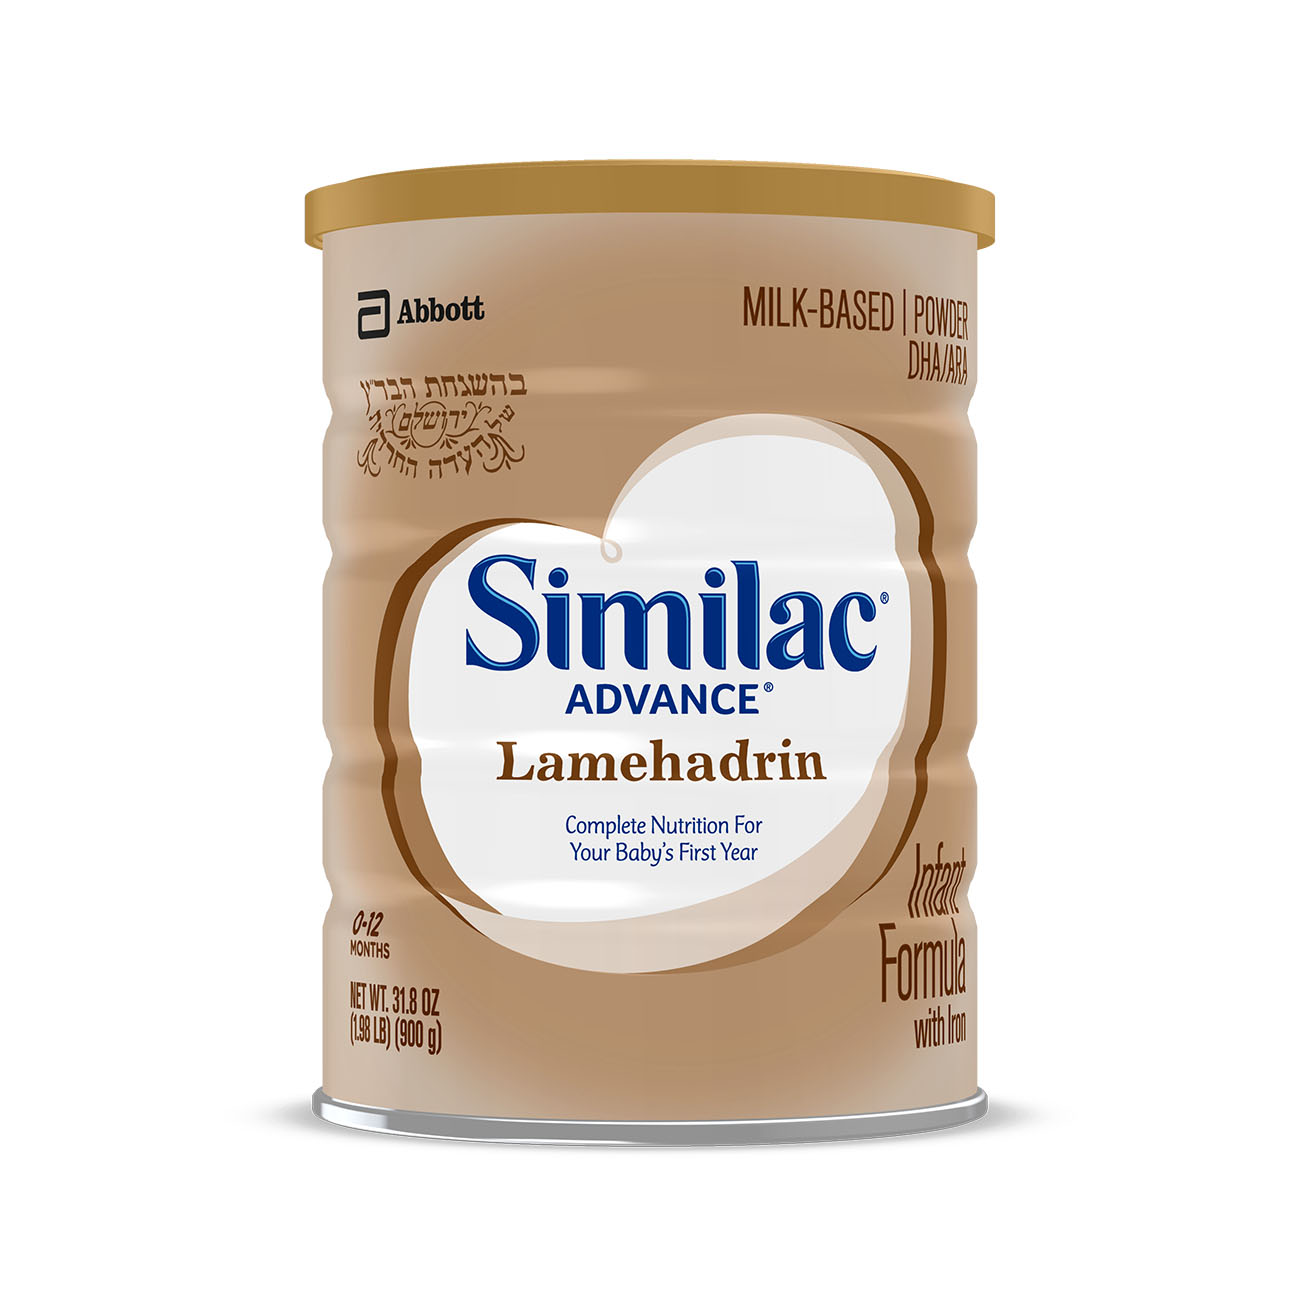 Similac Advance Lamehadrin Badatz-certified Infant Formula with Iron, Certified Kosher Baby Formula Powder, 31.8 oz